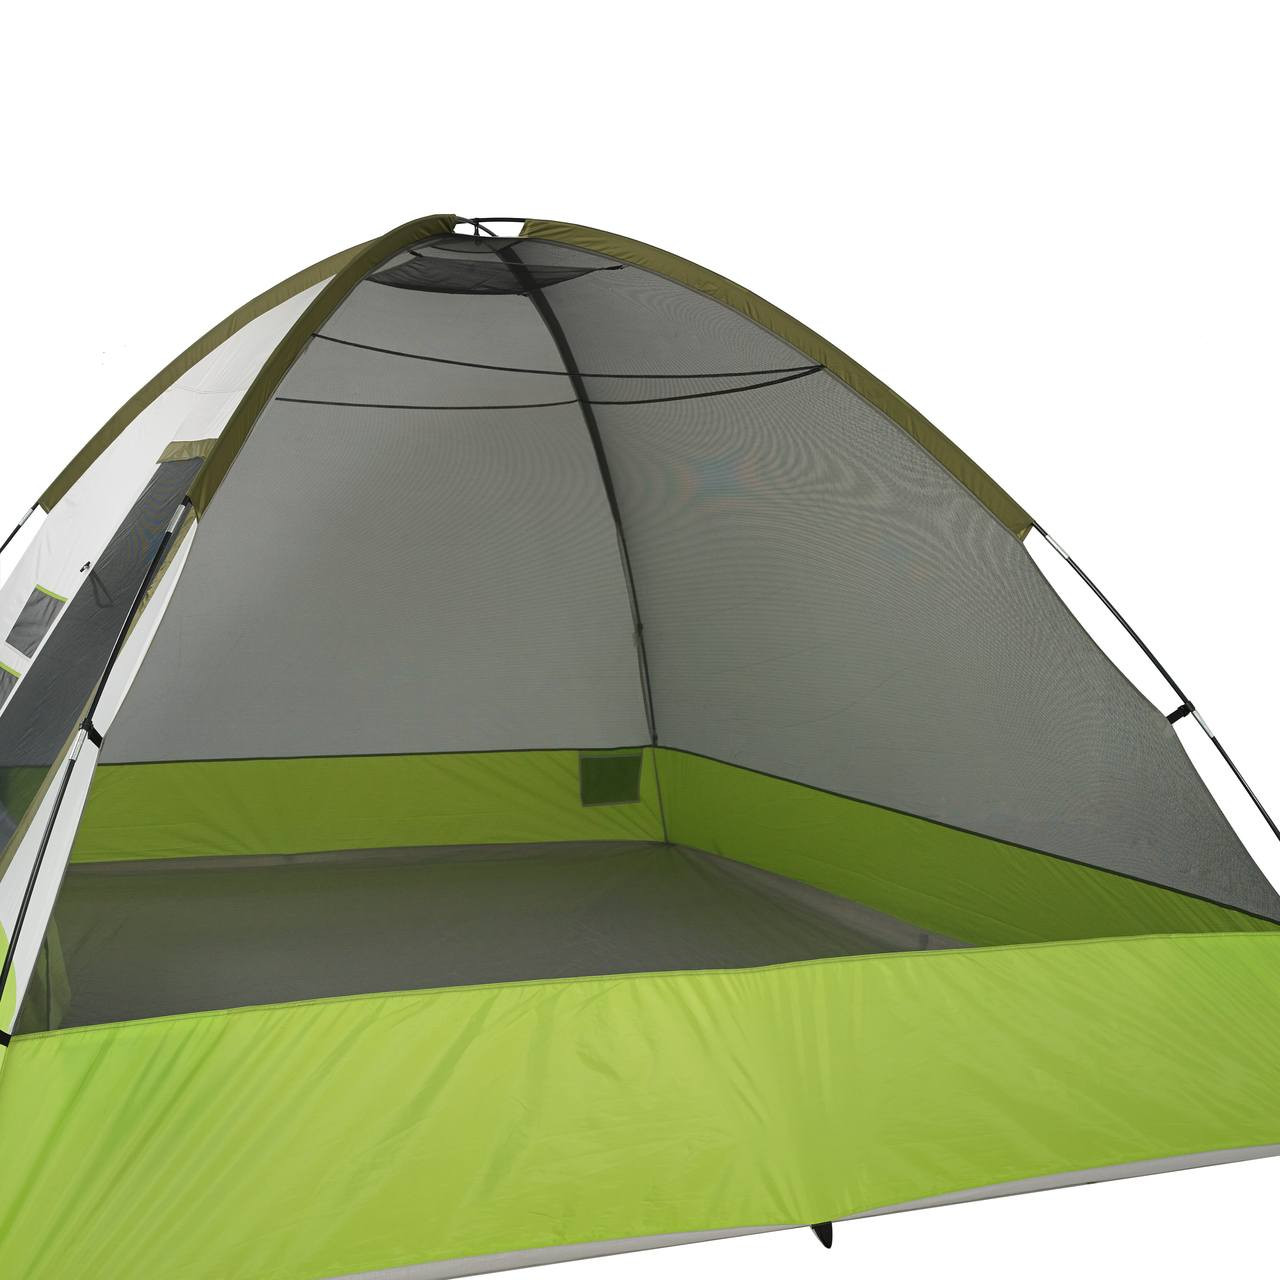 Side view of the Wenzel Portico 6 tent setup without the rain fly on showing the interior of the tent